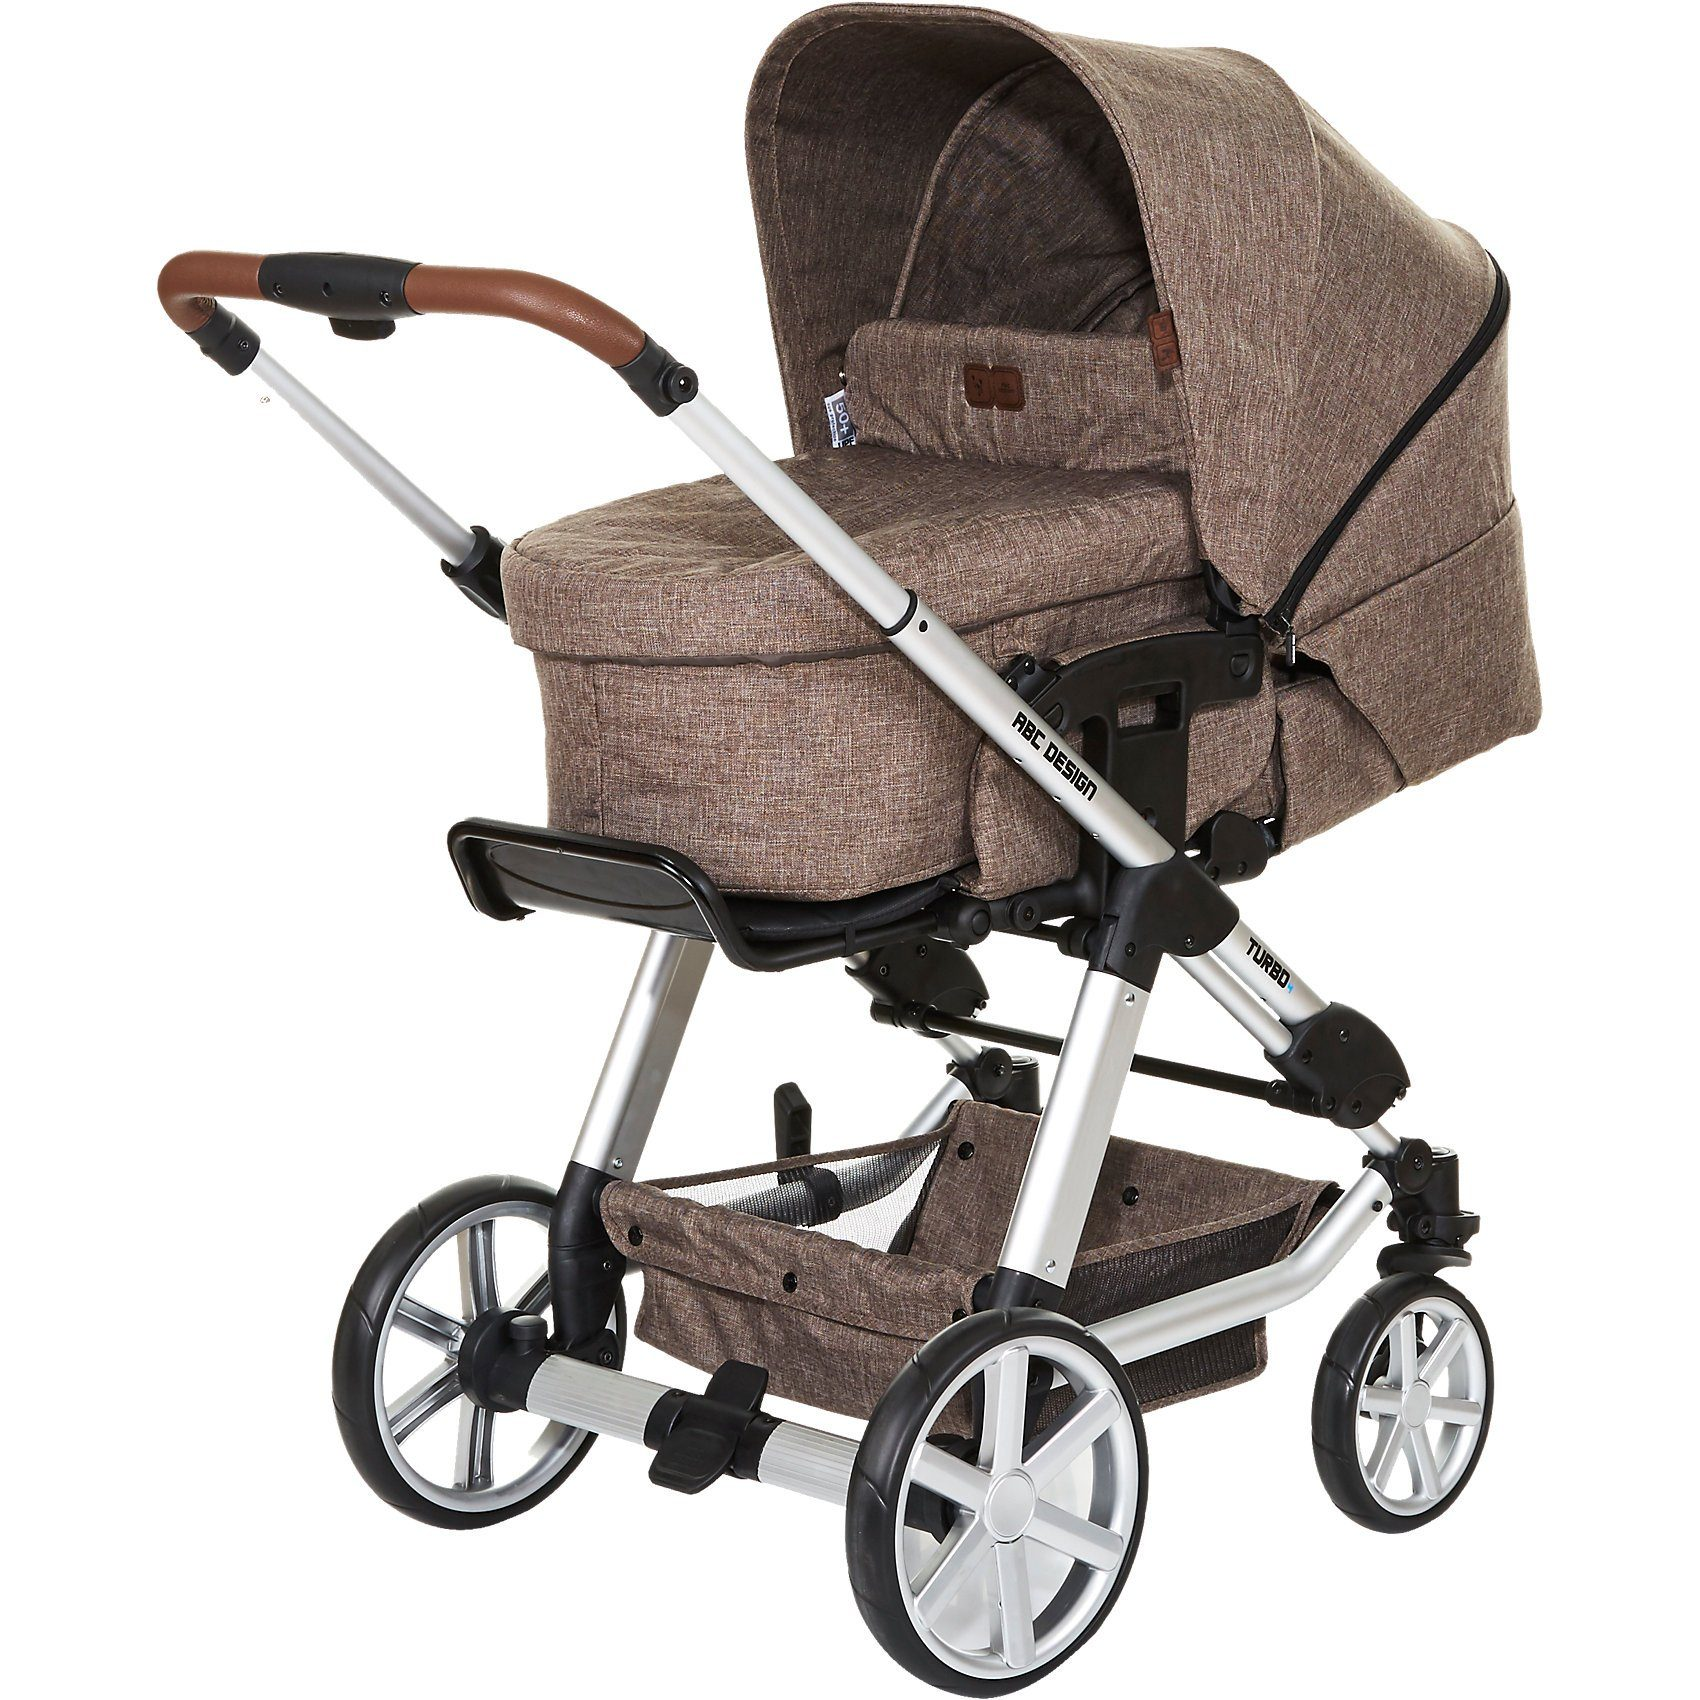 ABC Design Kombi Kinderwagen Turbo 4, bean, 2017